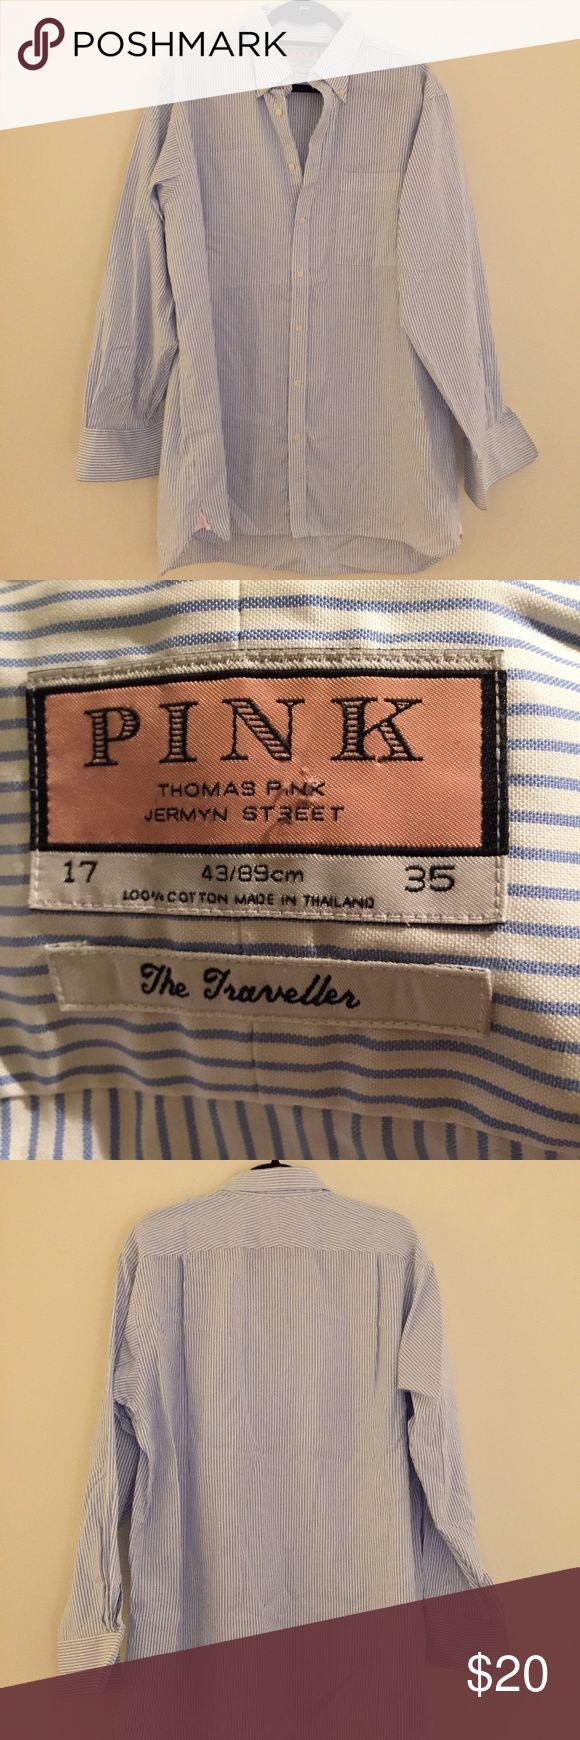 """Thomas Pink Men's shirt (or women's shirtdress!) Blue and white striped men's shirt from Thomas Pink. Men's size 17/35, but I wore it as a shirtdress! Super cute over leggings or tights (and trust me it's long enough, I'm 5'10""""!). Would be great for women's M or L. Chest is 48"""" wide, length from shoulder is 32"""" in the front, 35"""" in the back.  Note one of the buttons has cracked on the cuff but it still works! Otherwise in great condition - no visible tears, marks, stains, etc. From a smoke…"""